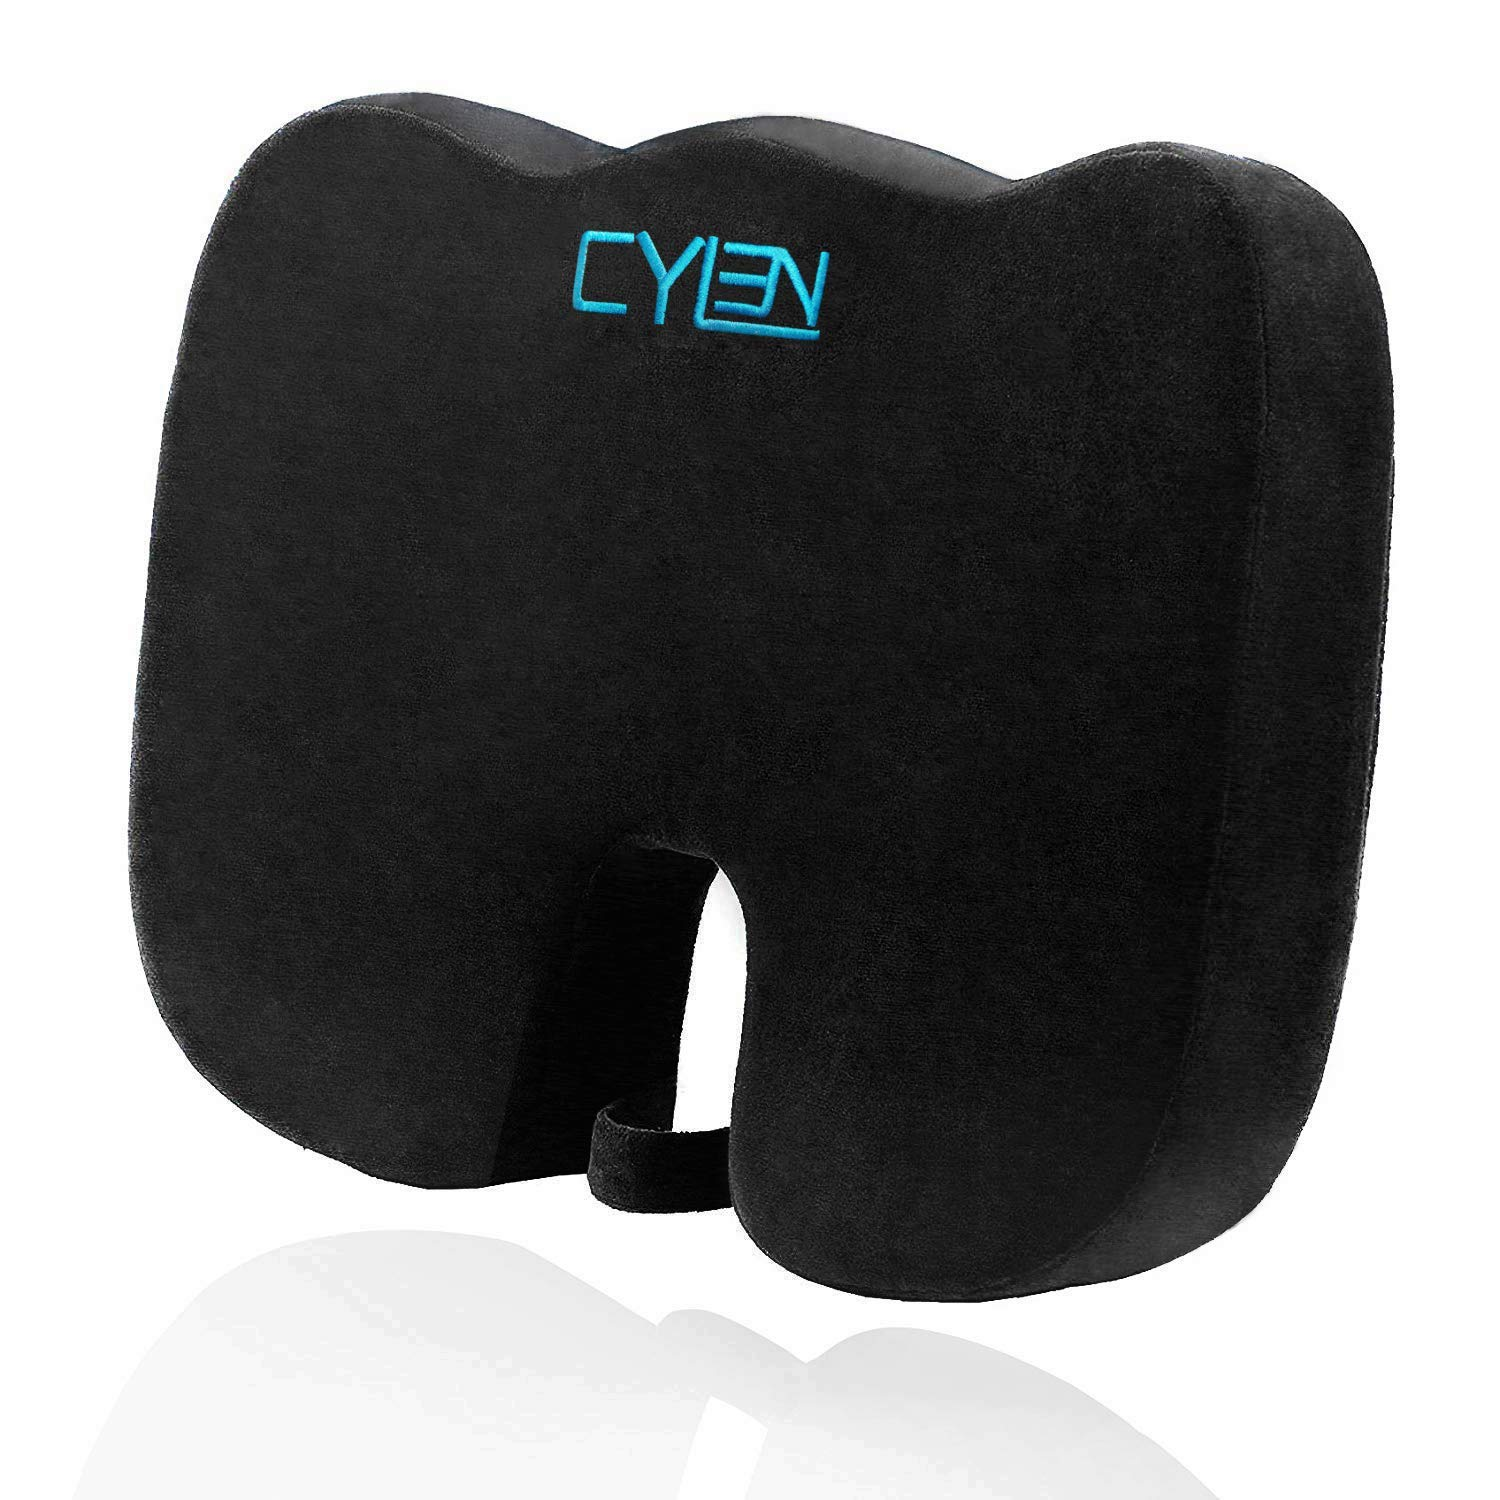 CYLEN Home-Memory Foam Bamboo Charcoal Infused Ventilated Orthopedic Seat Cushion